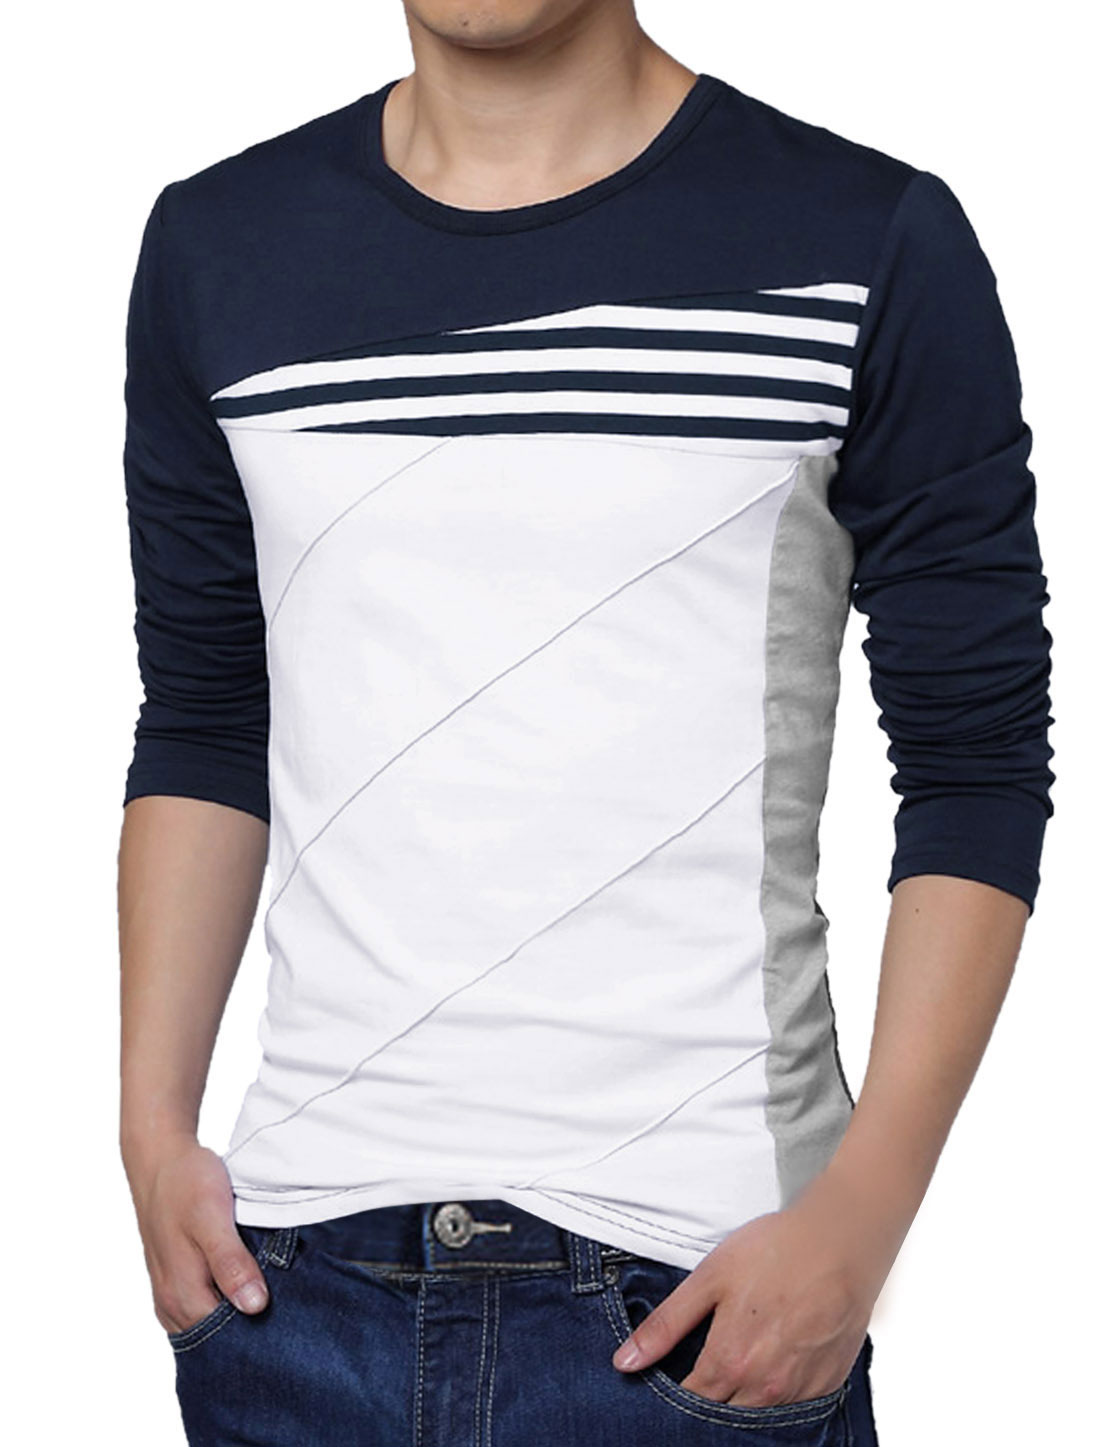 Men Long Sleeves Color Block Stripes Tee Shirt Blue White S